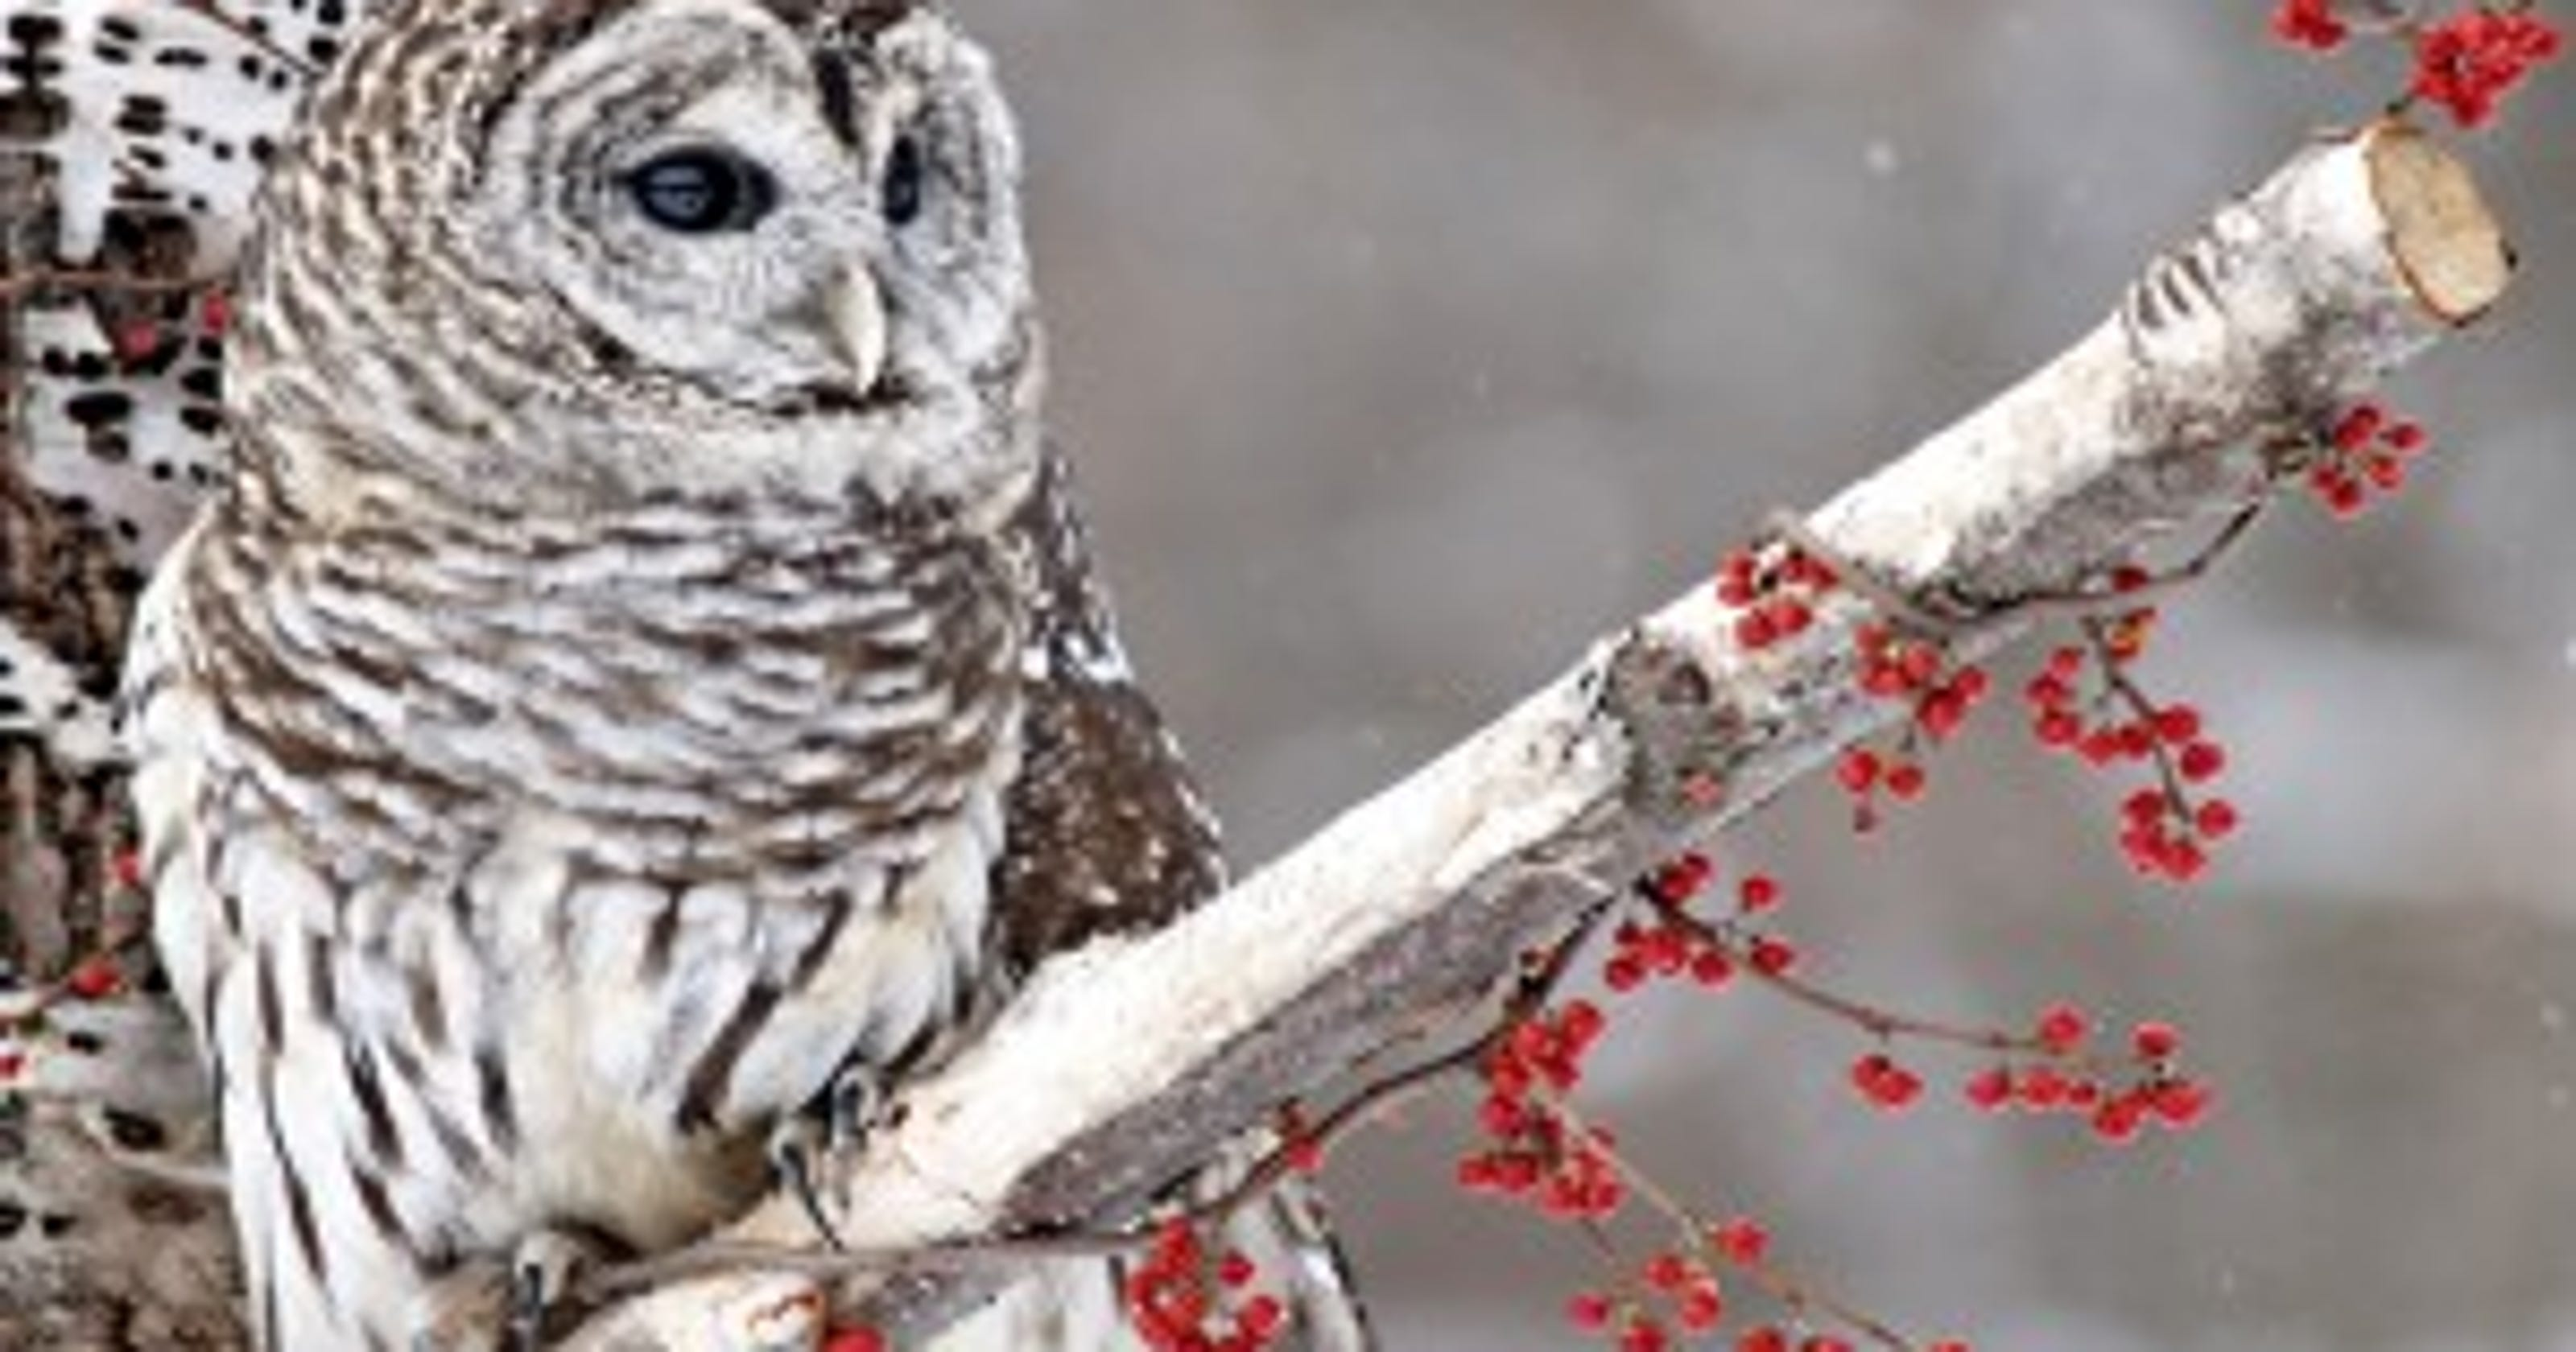 Barred owls are coldly efficient silent assassins